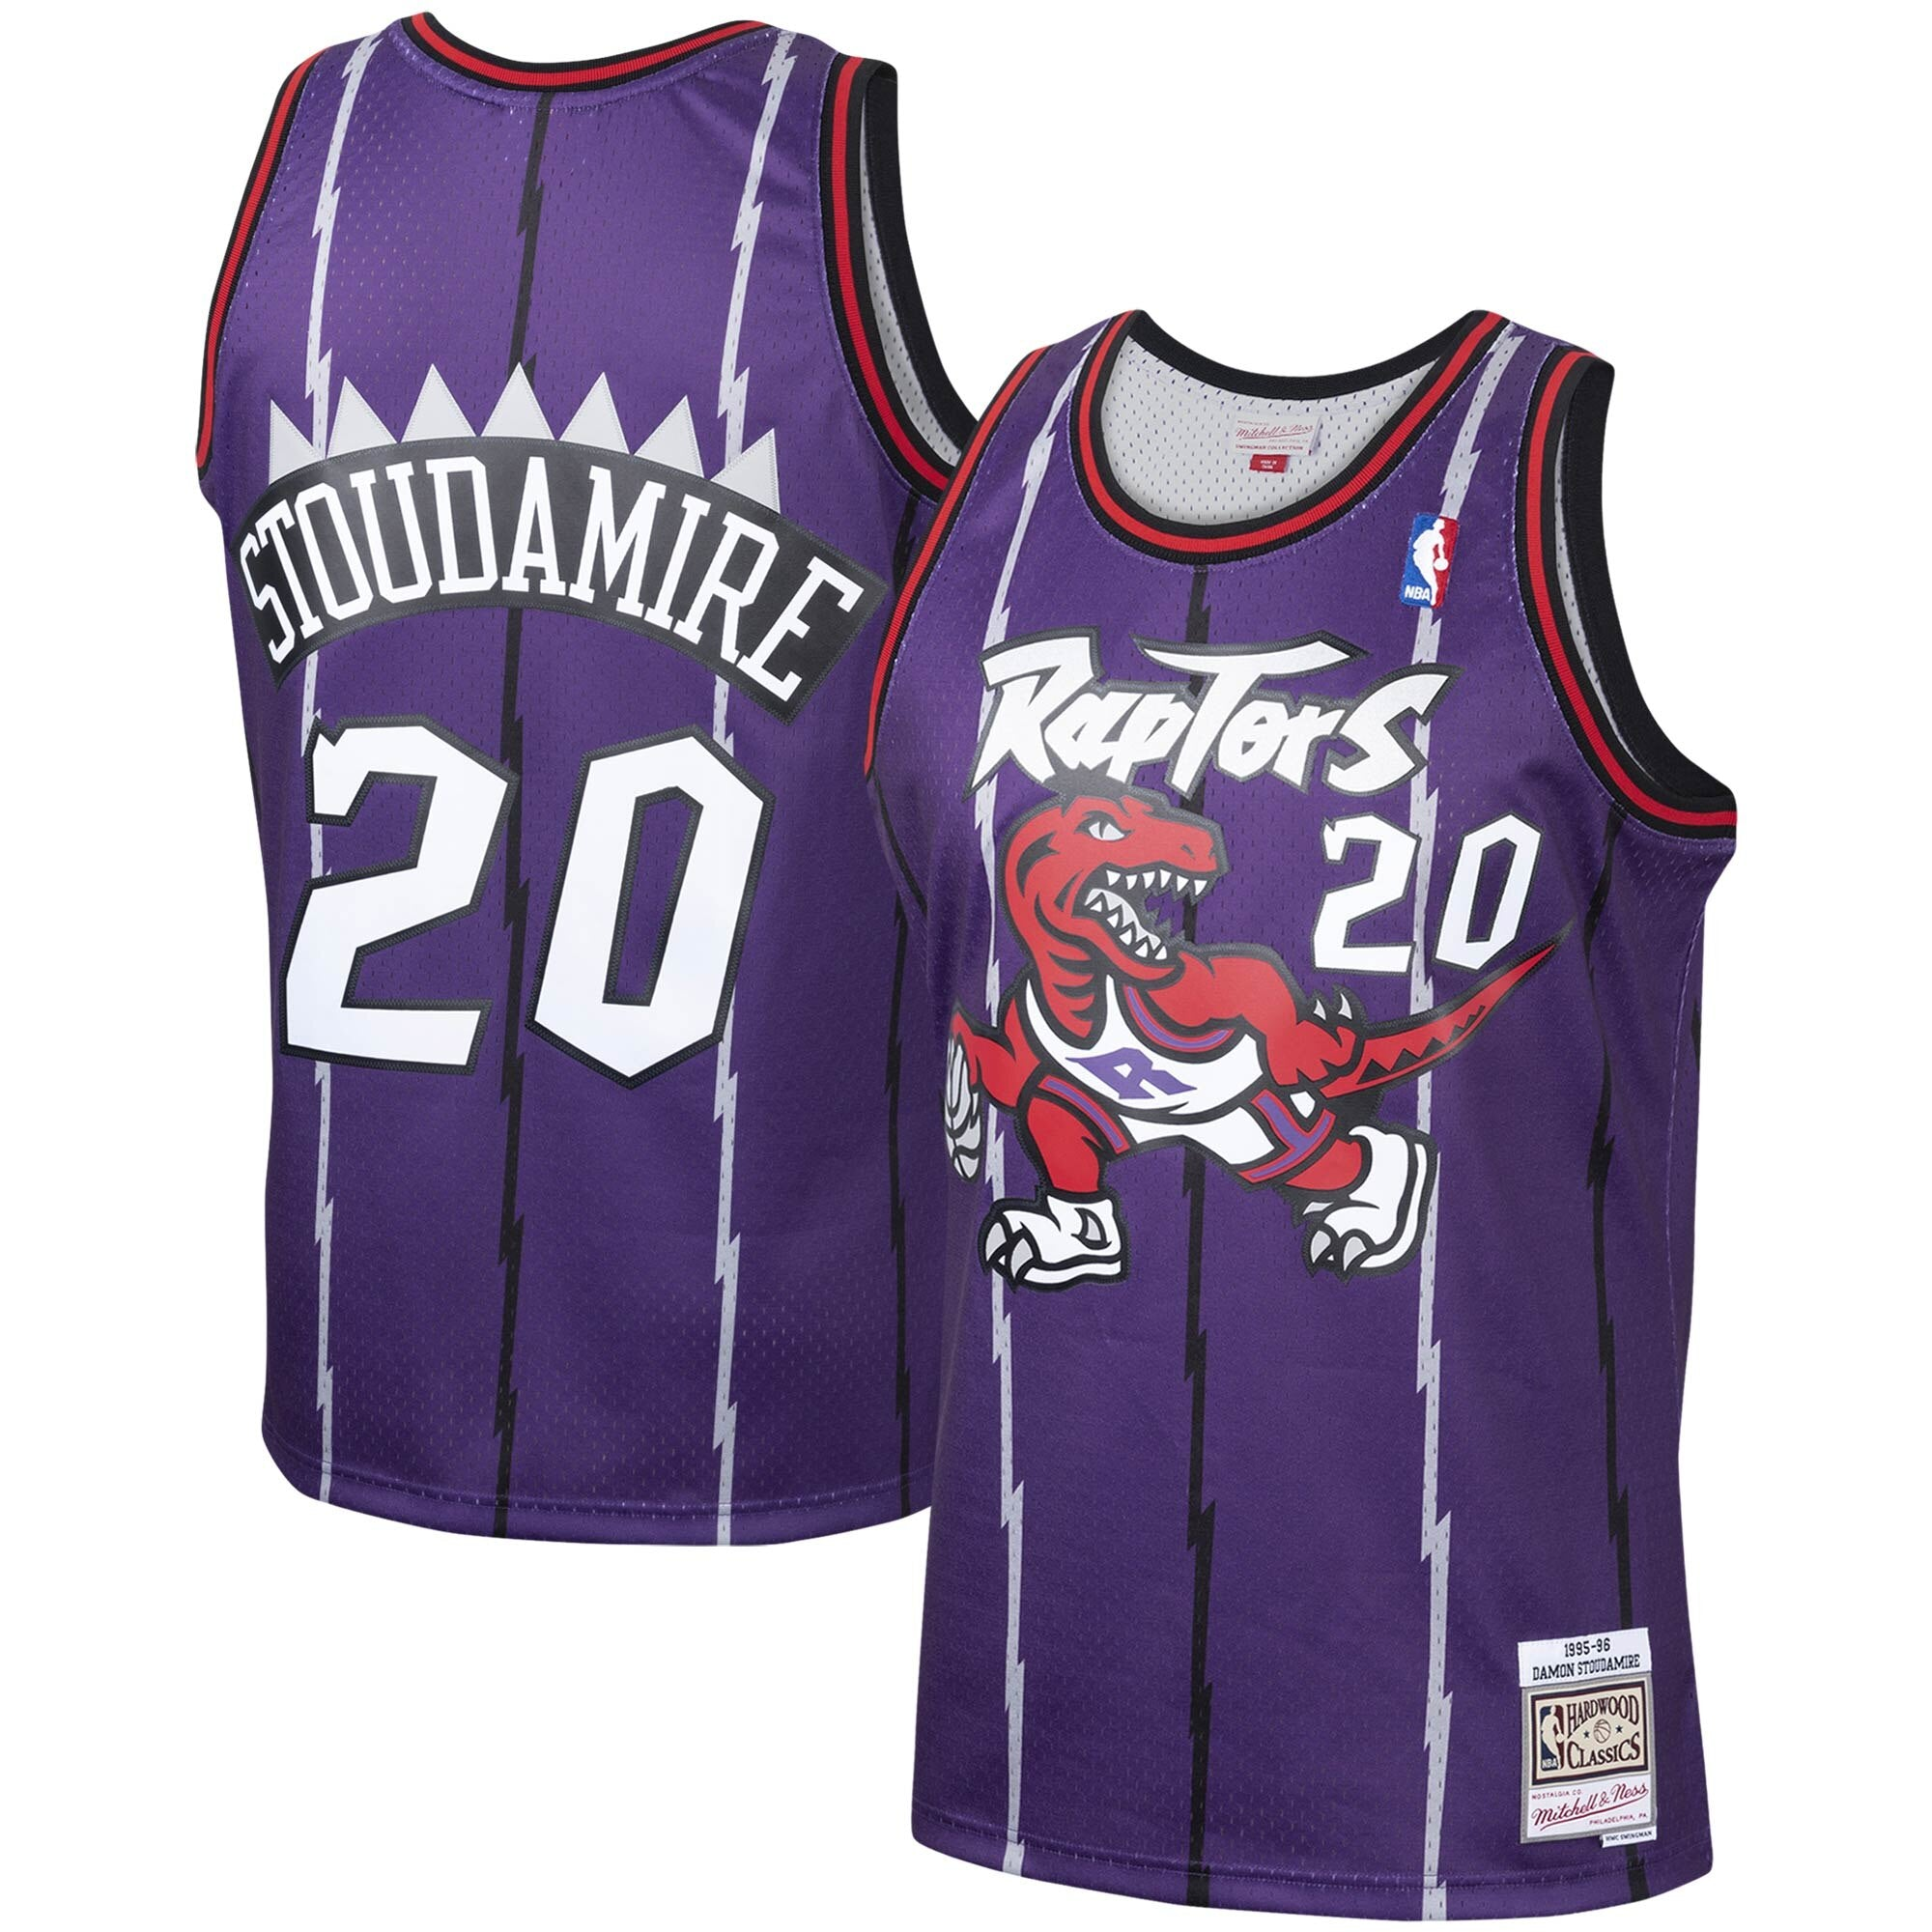 Damon Stoudamire Toronto Raptors Purple NBA Swingman Jersey by Mitchell & Ness